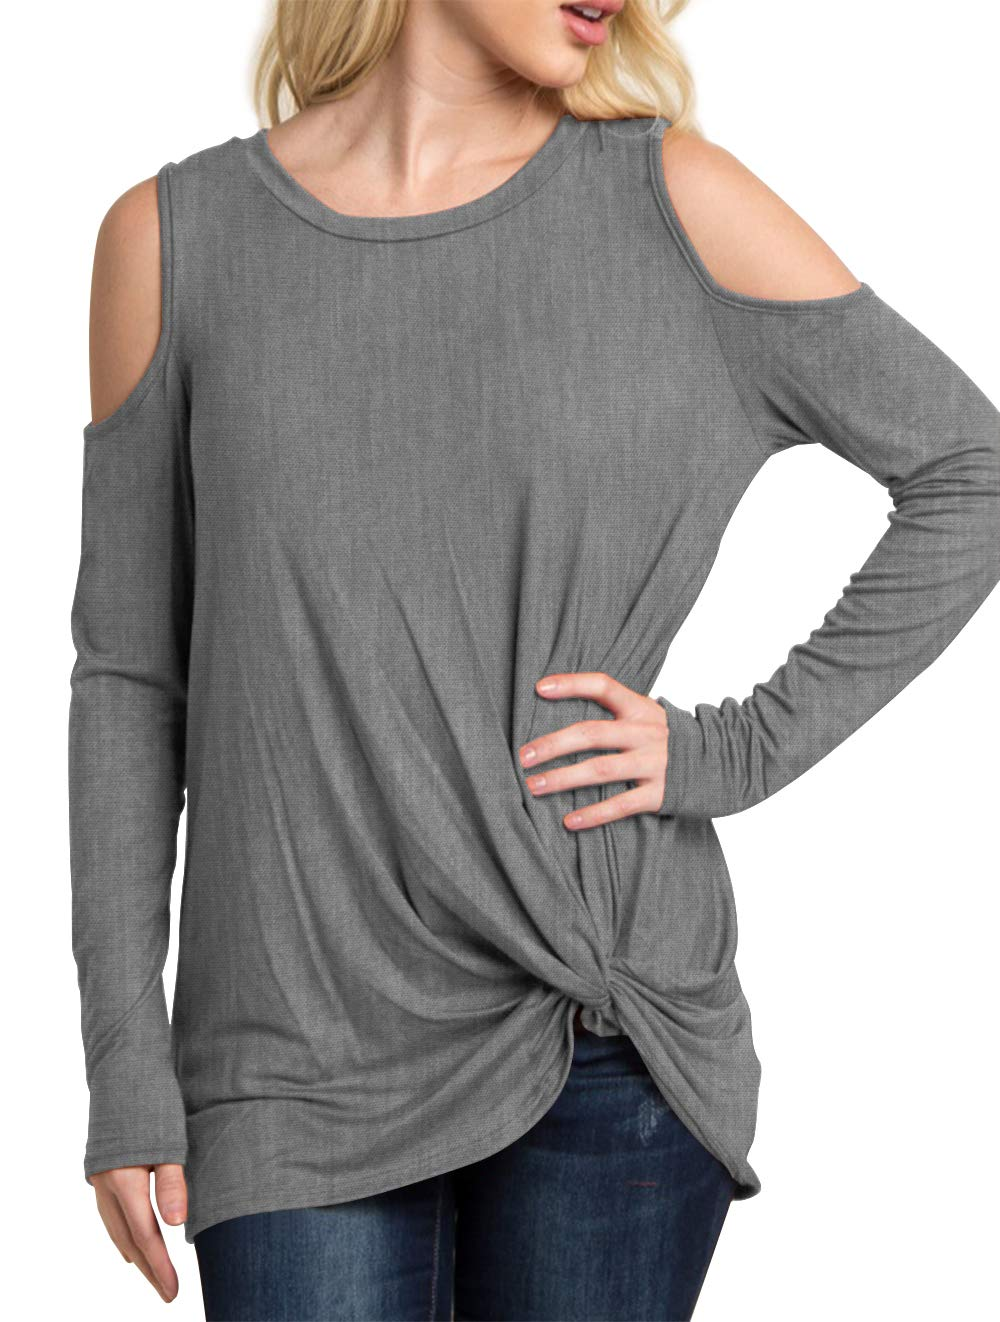 Eanklosco Women's Long Sleeve Cold Shoulder Cut Out T Shirts Casual Knot Front Tunic Tops (Gray, M)